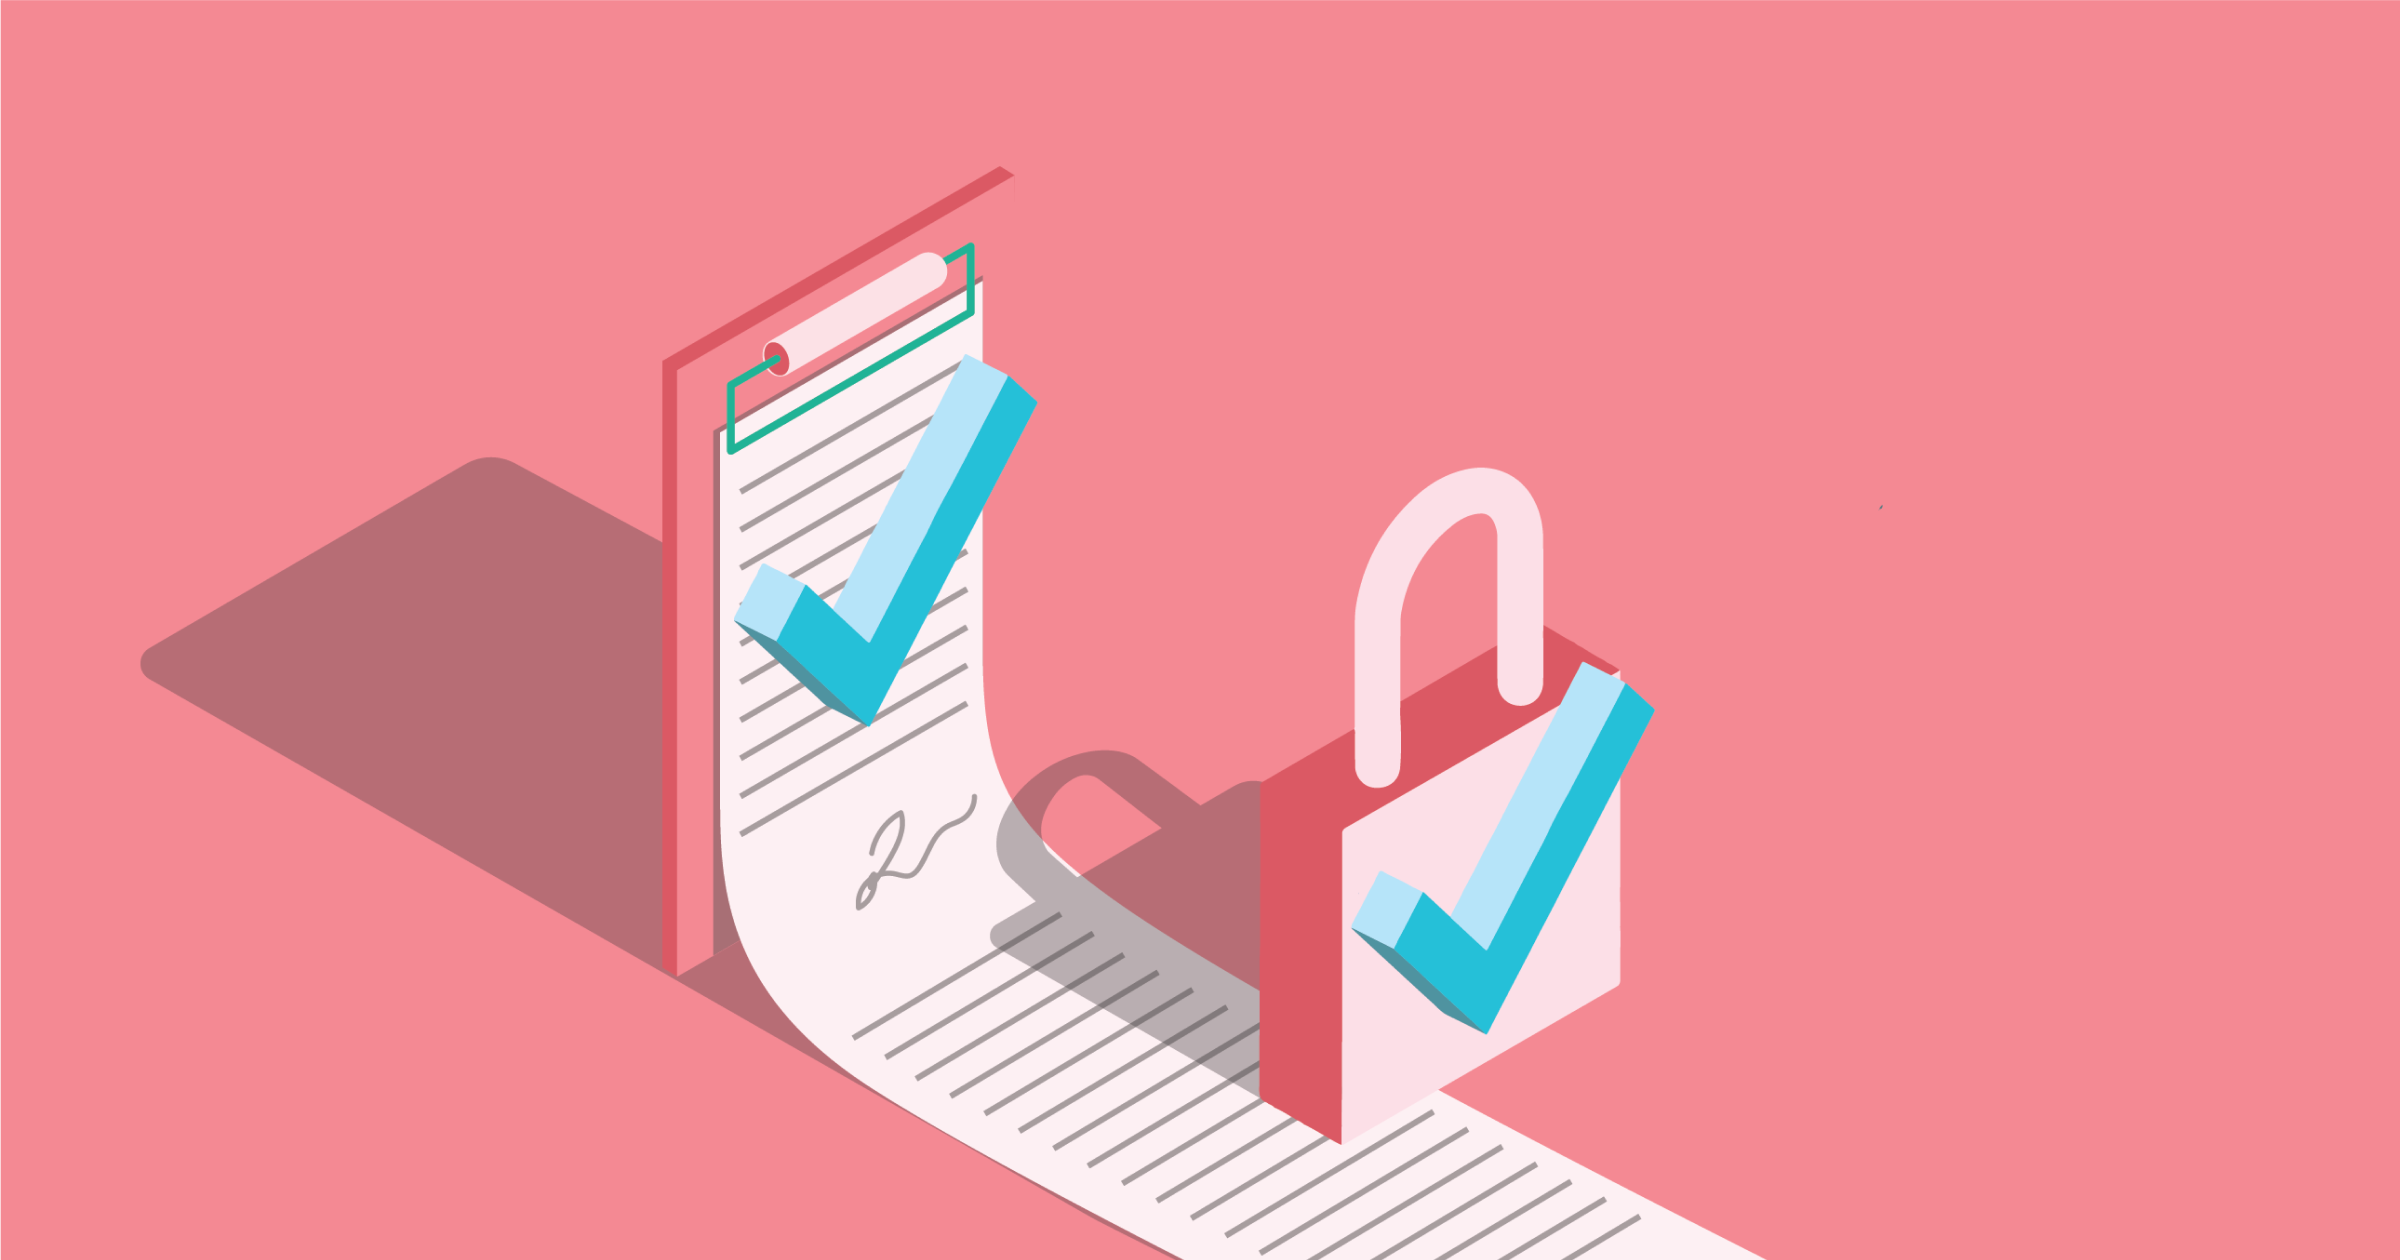 Creating a Privacy Policy for Your App